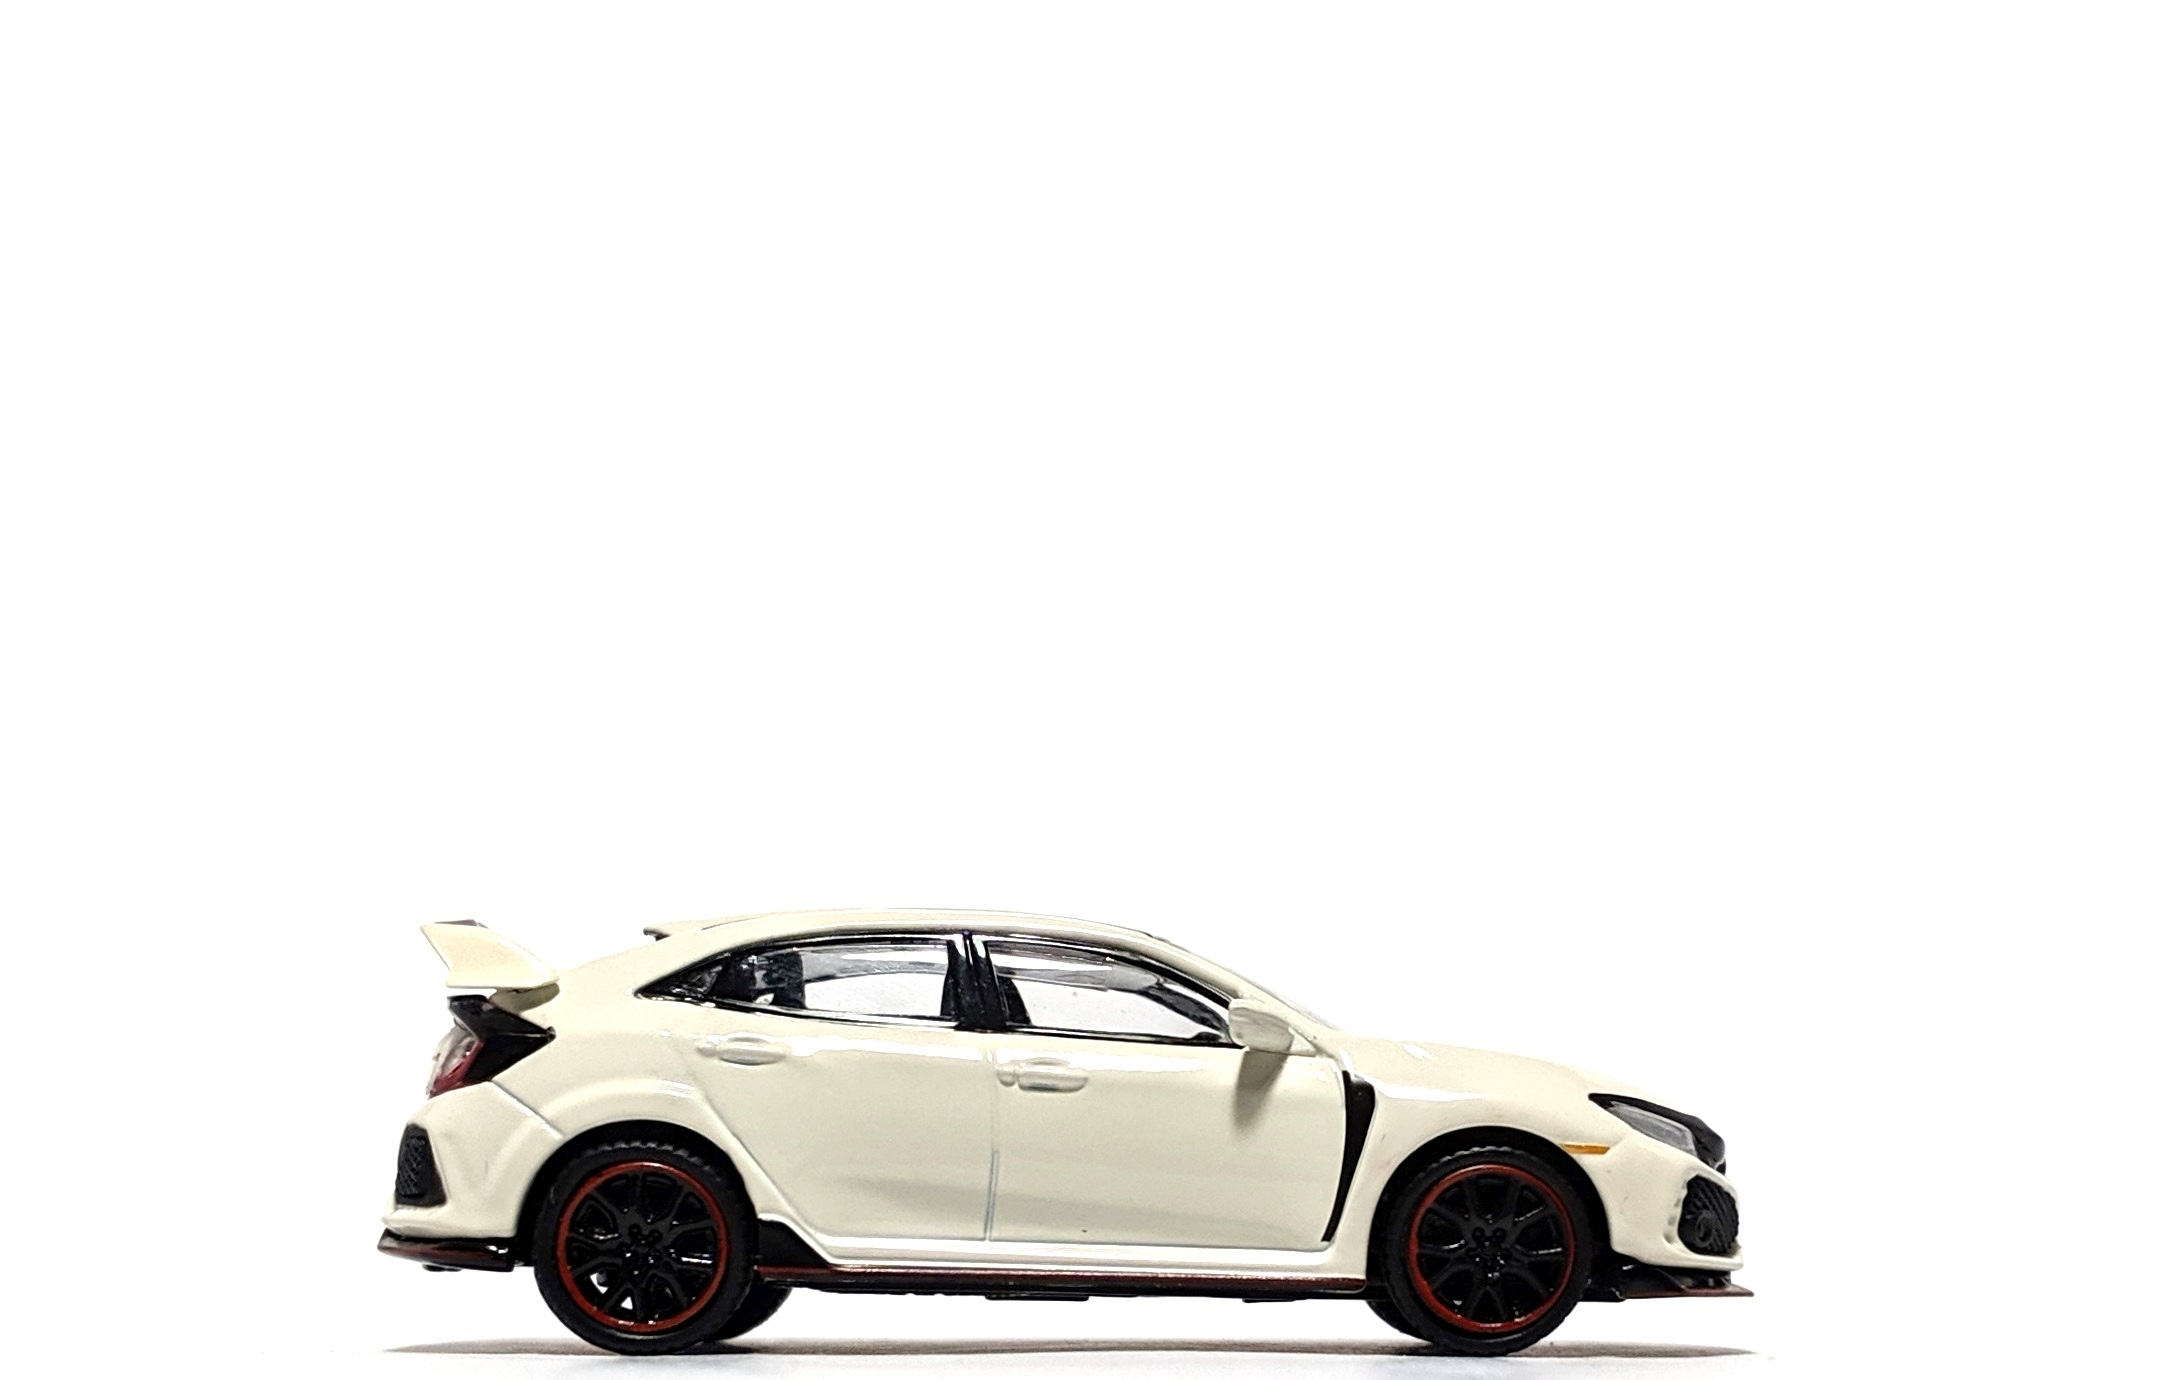 Honda Civic Type R in Championship White, by Mini GT